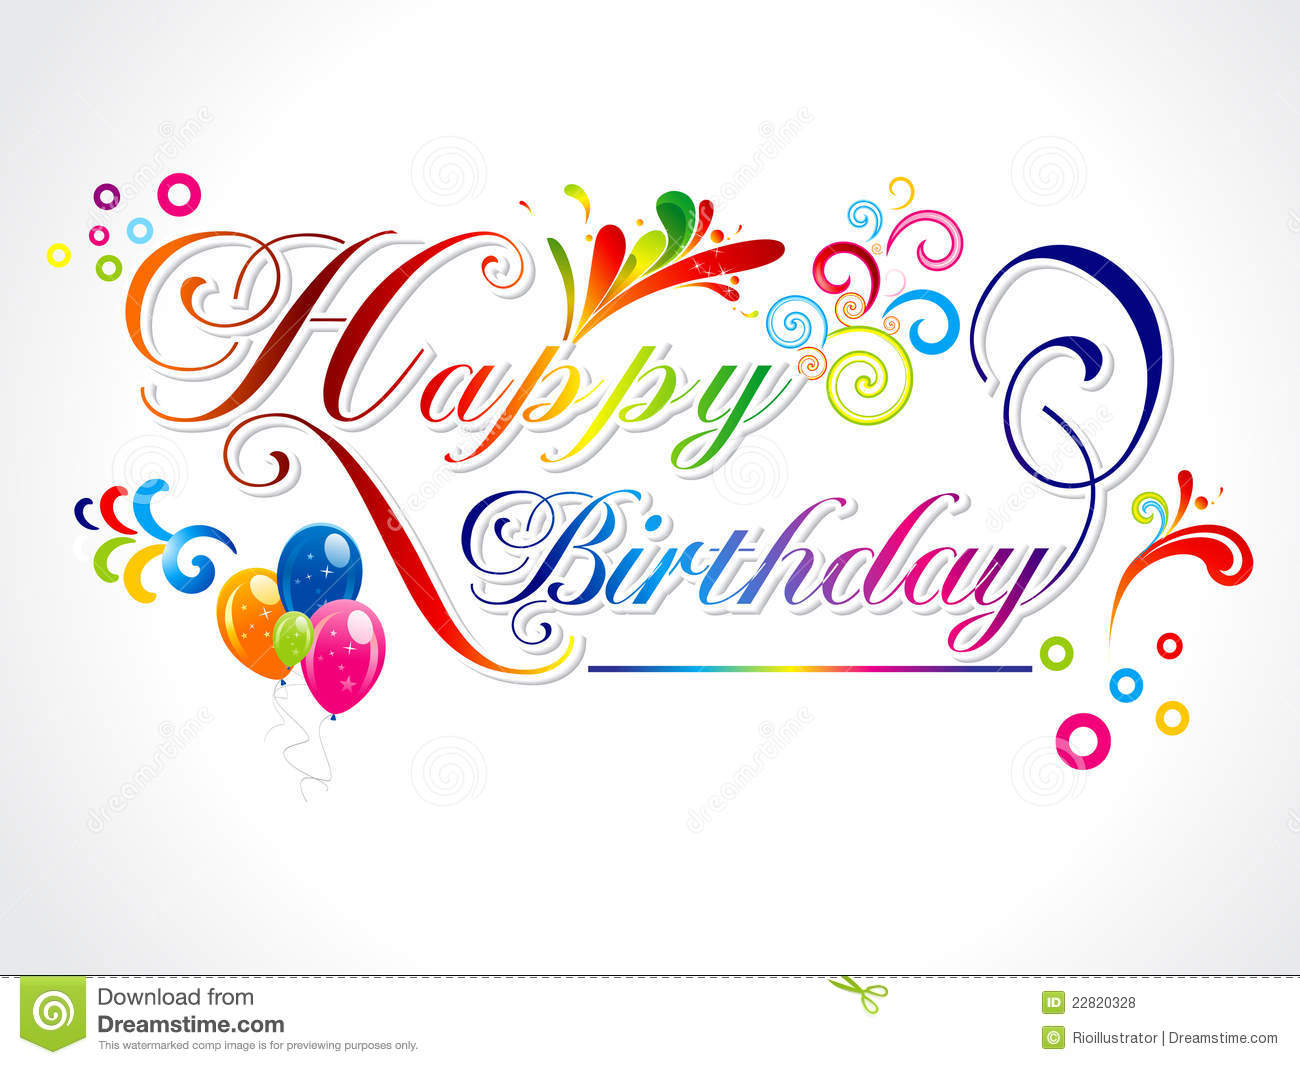 birthday card editor free download ; abstract-happy-birthday-card-22820328